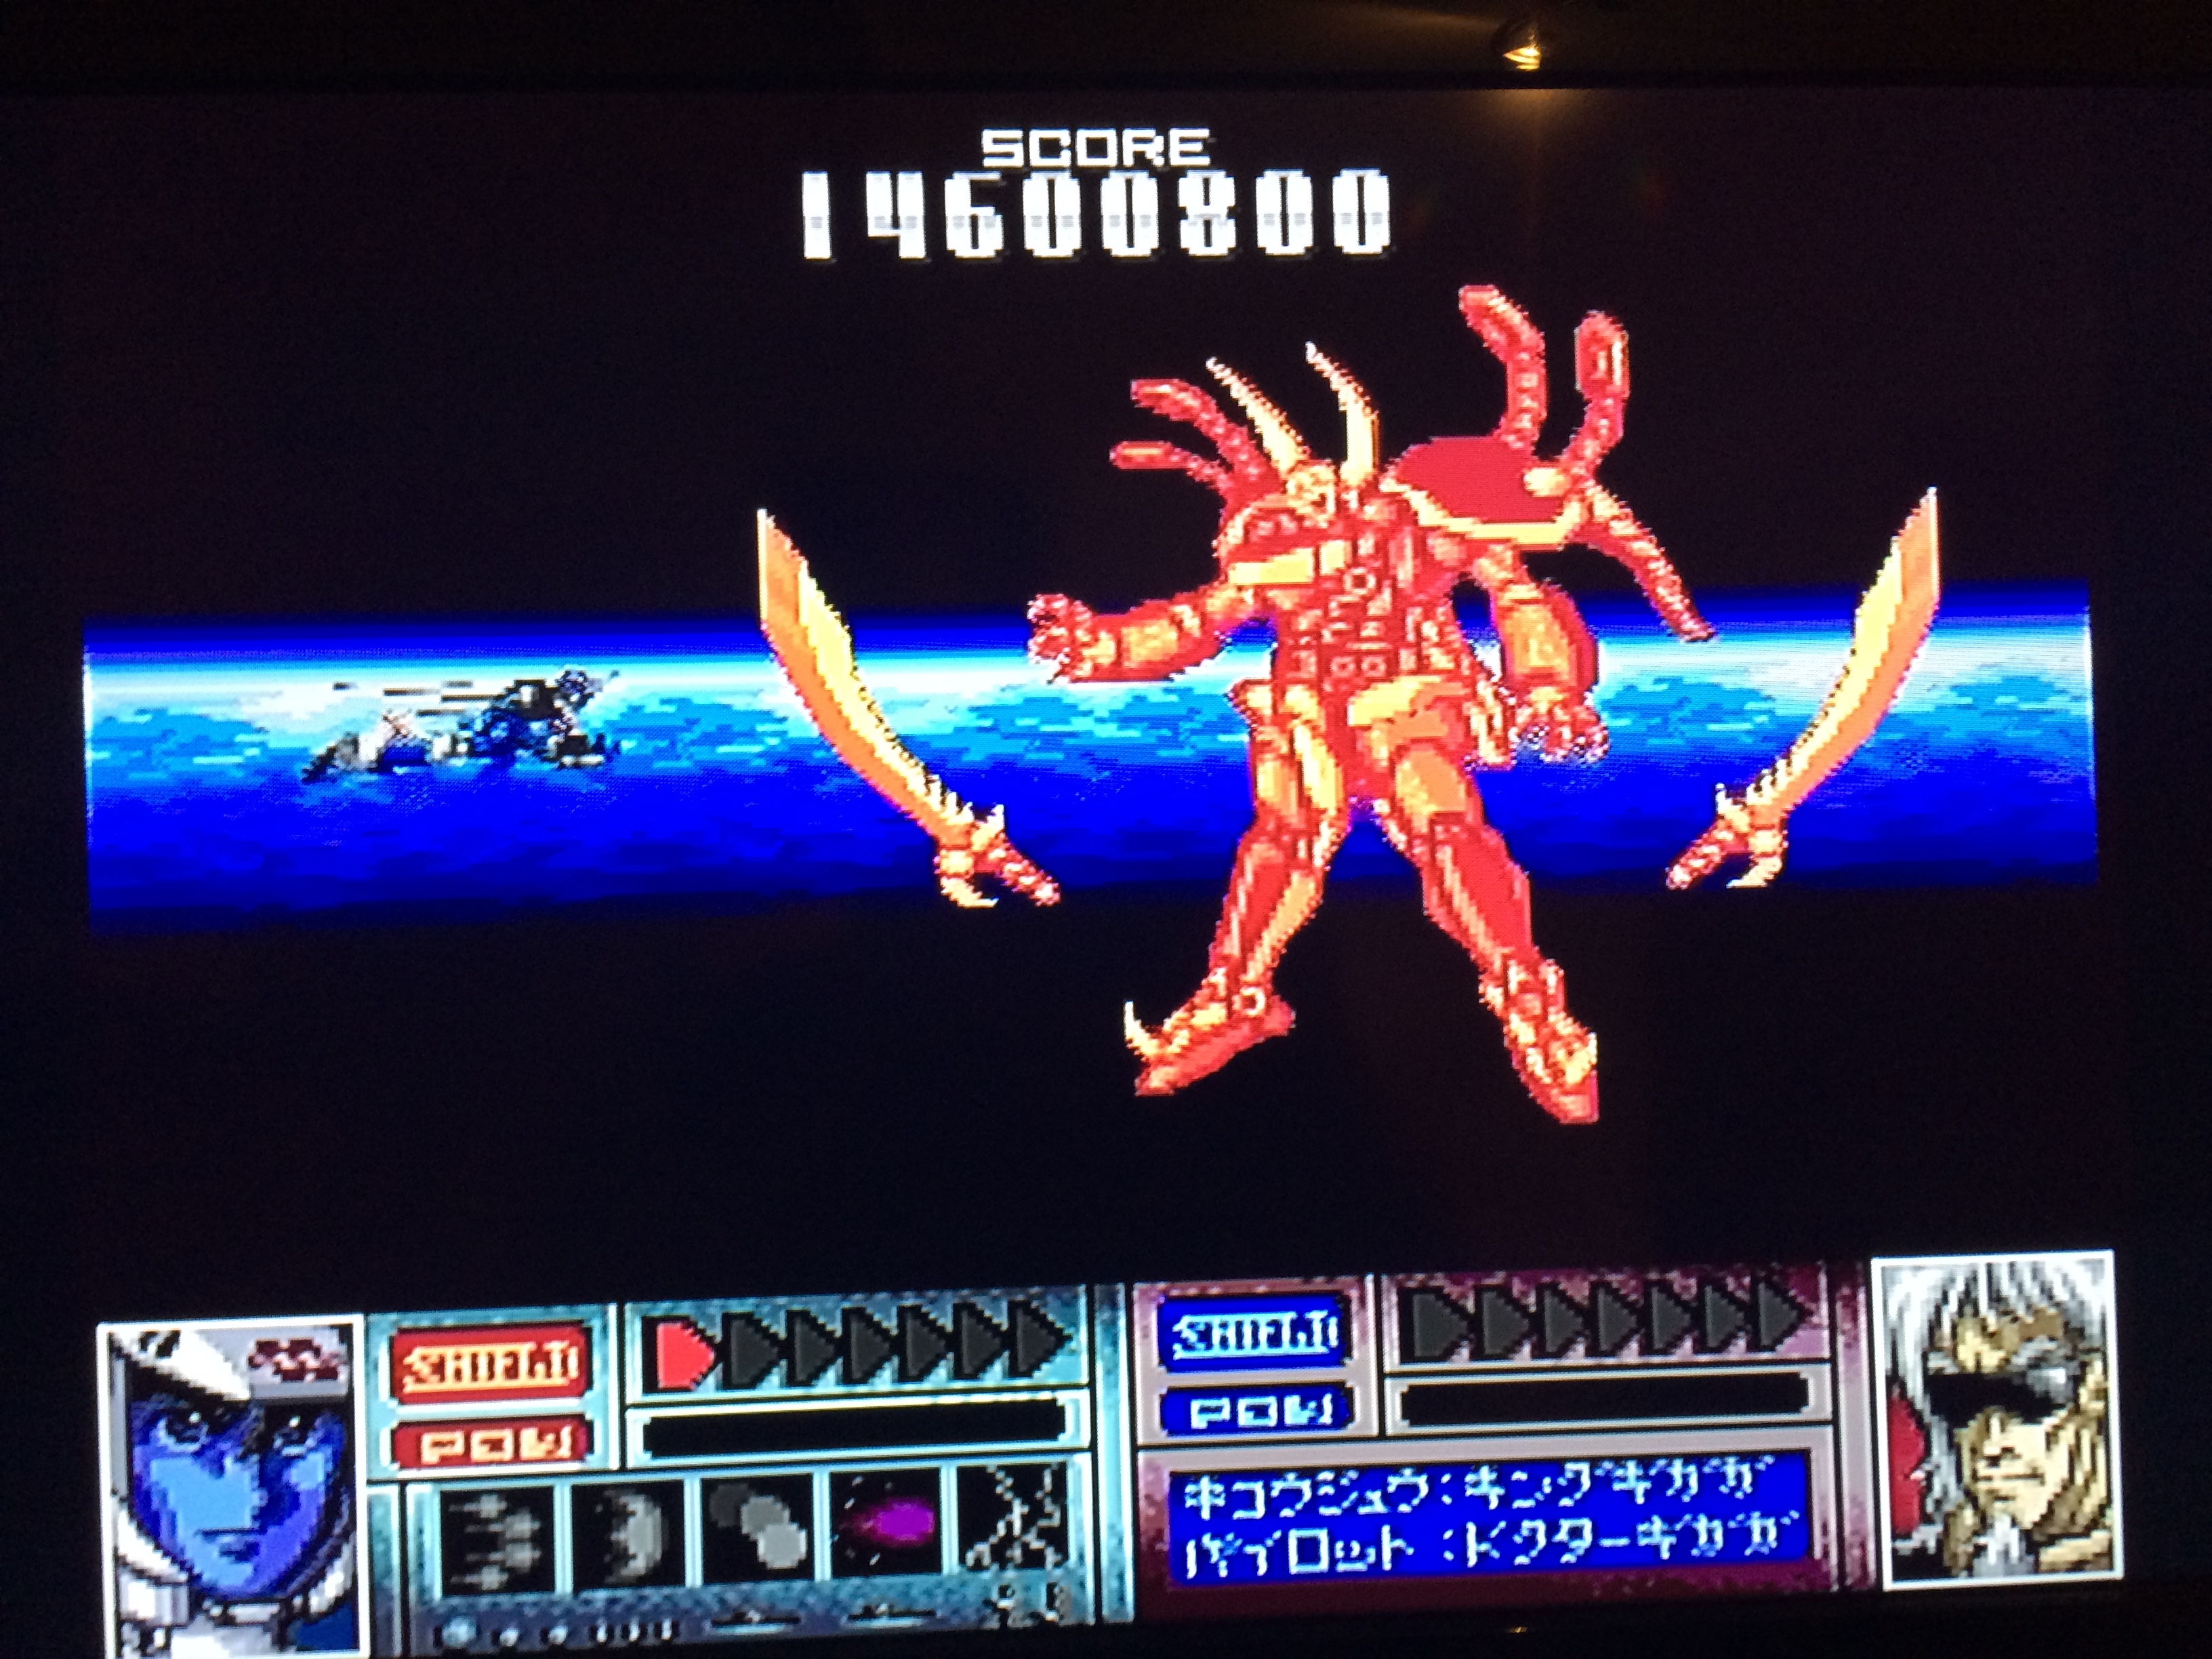 JBoorman: Kiaidan 00 (TurboGrafx-16/PC Engine) 14,600,800 points on 2019-10-07 04:10:07